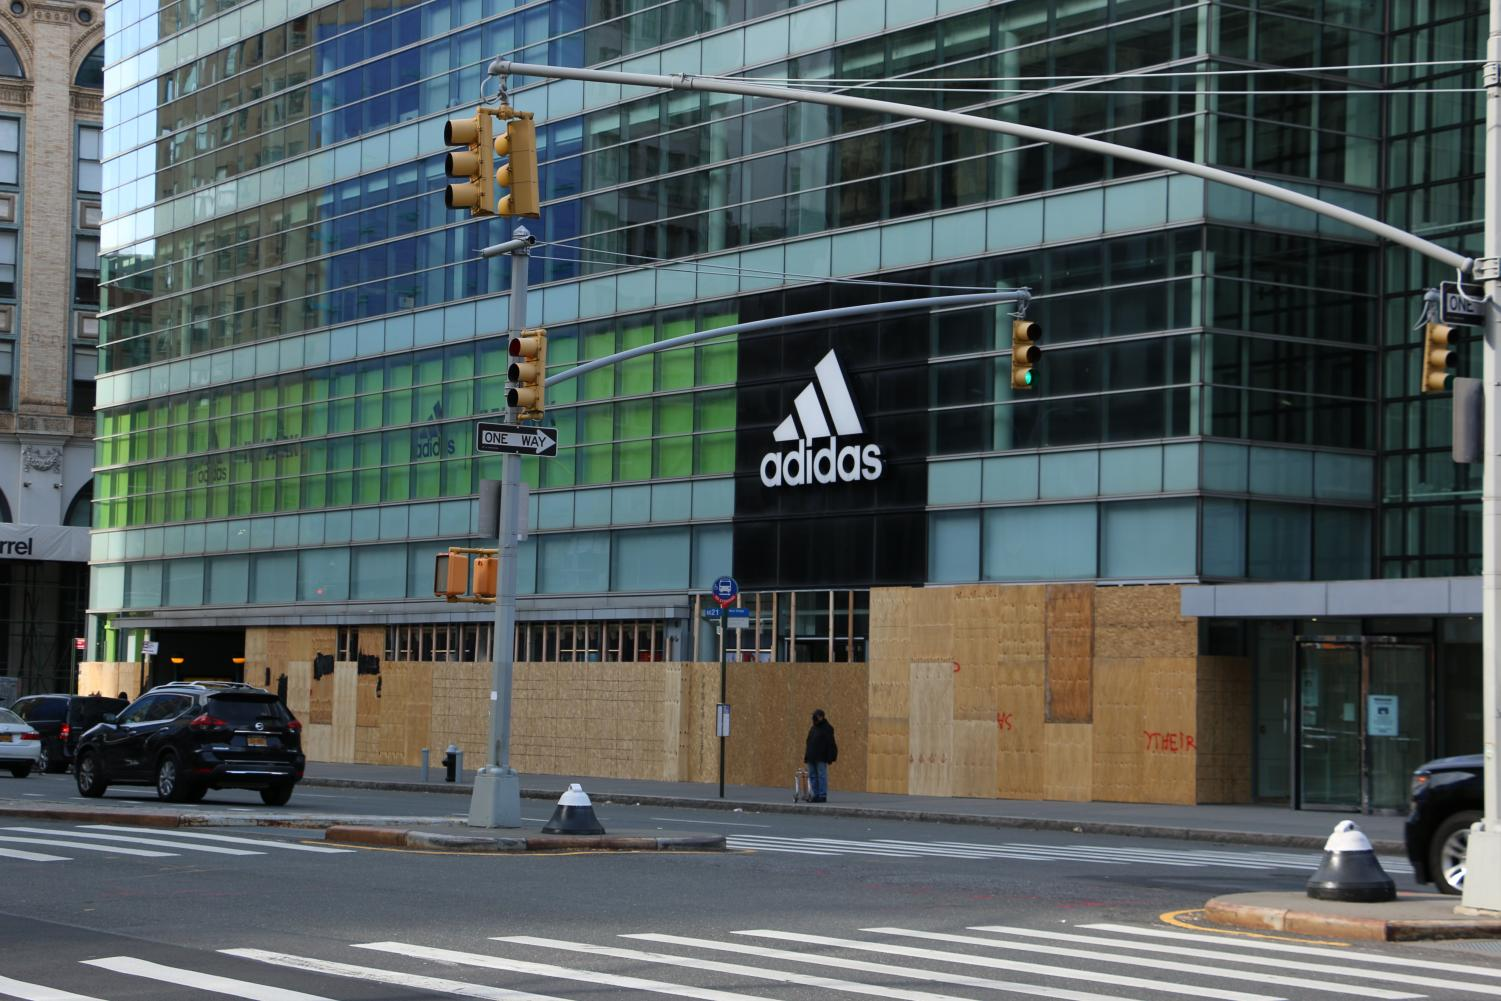 the Adidas store with its first floor windows entirely covered with boards